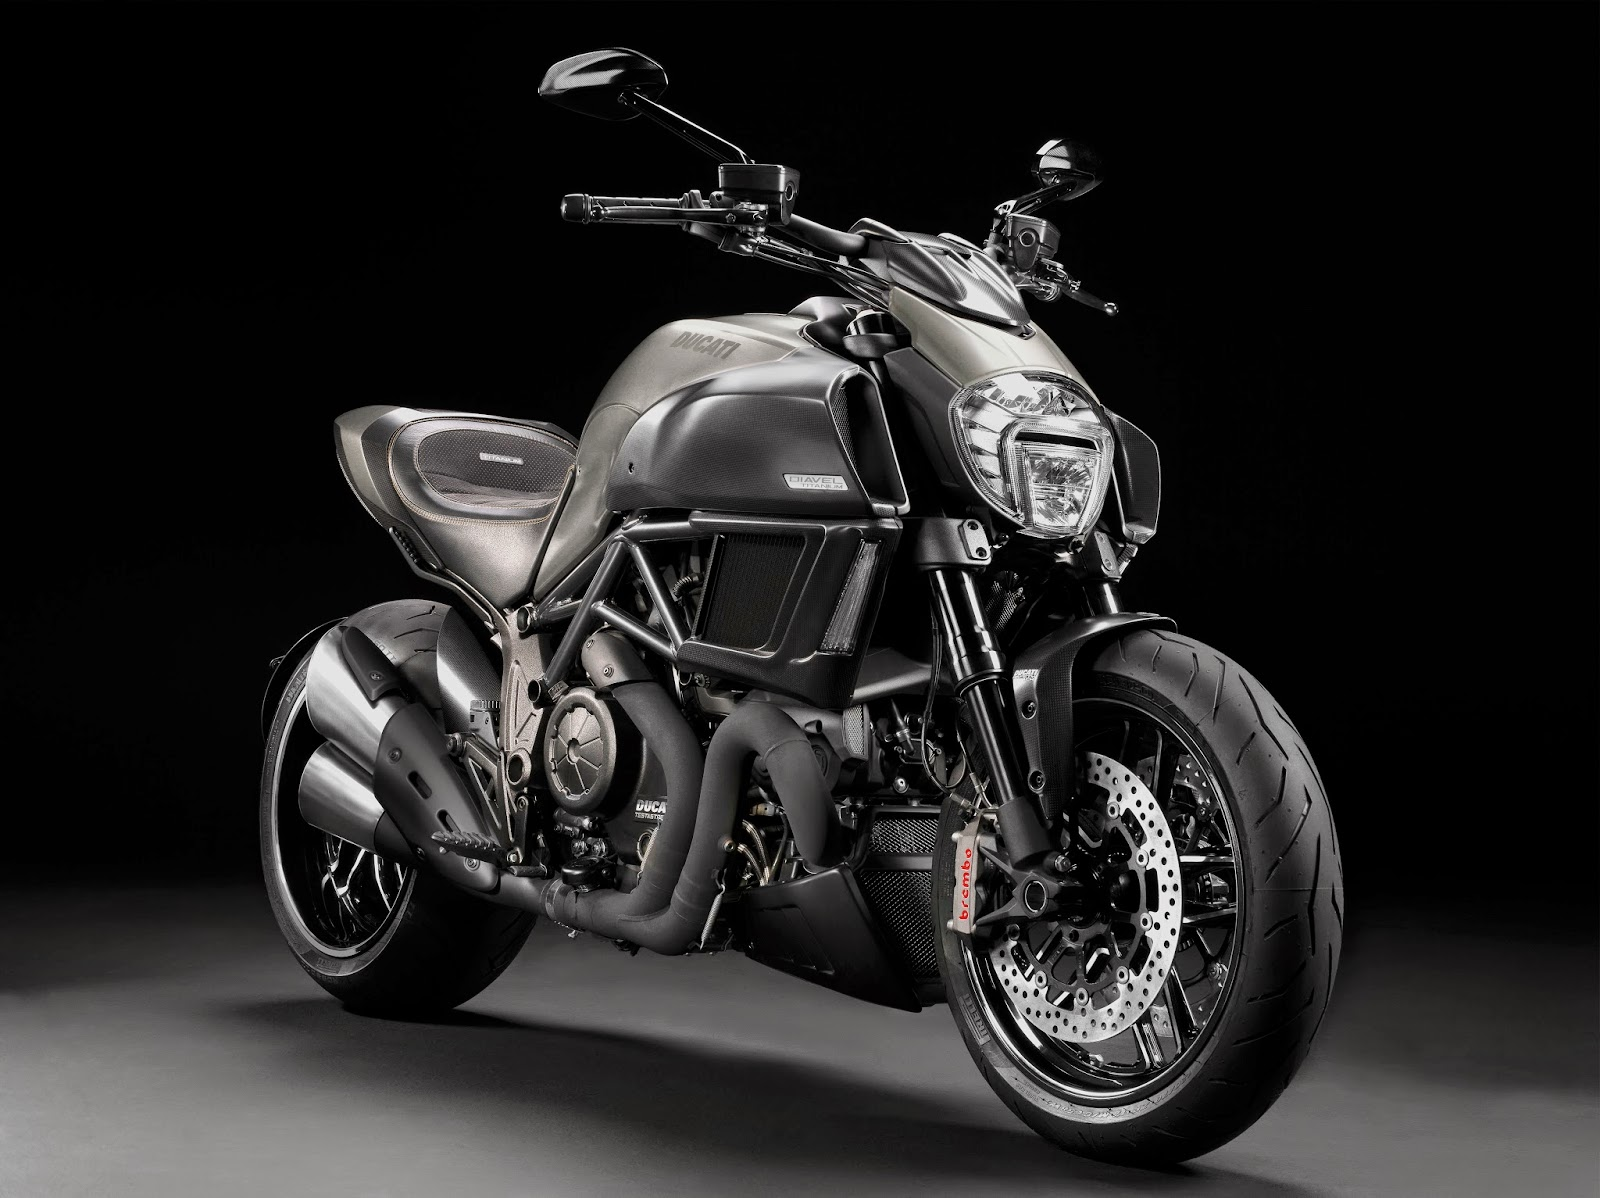 racing caf ducati diavel titanium limited edition 2015. Black Bedroom Furniture Sets. Home Design Ideas